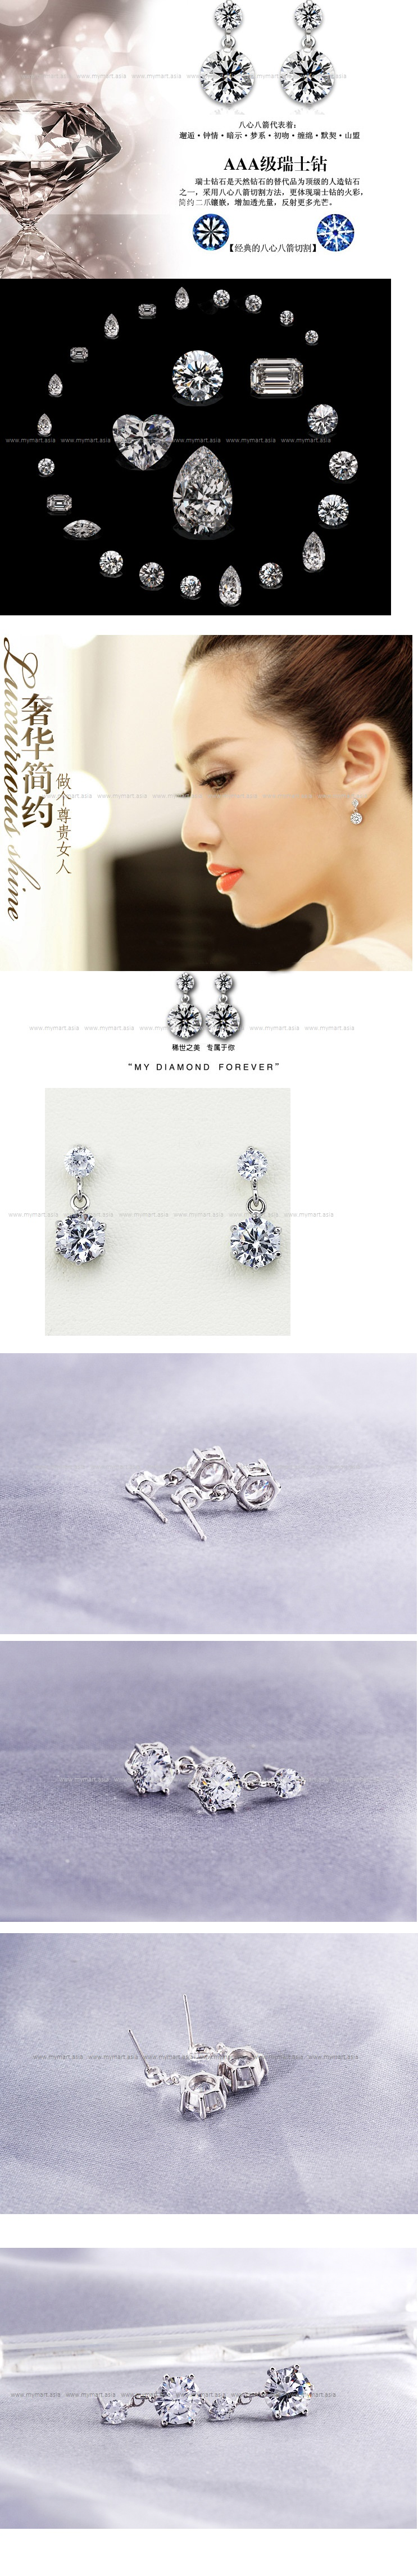 Elegant Only One Girlfriend S925 Silver Diamond Earrings